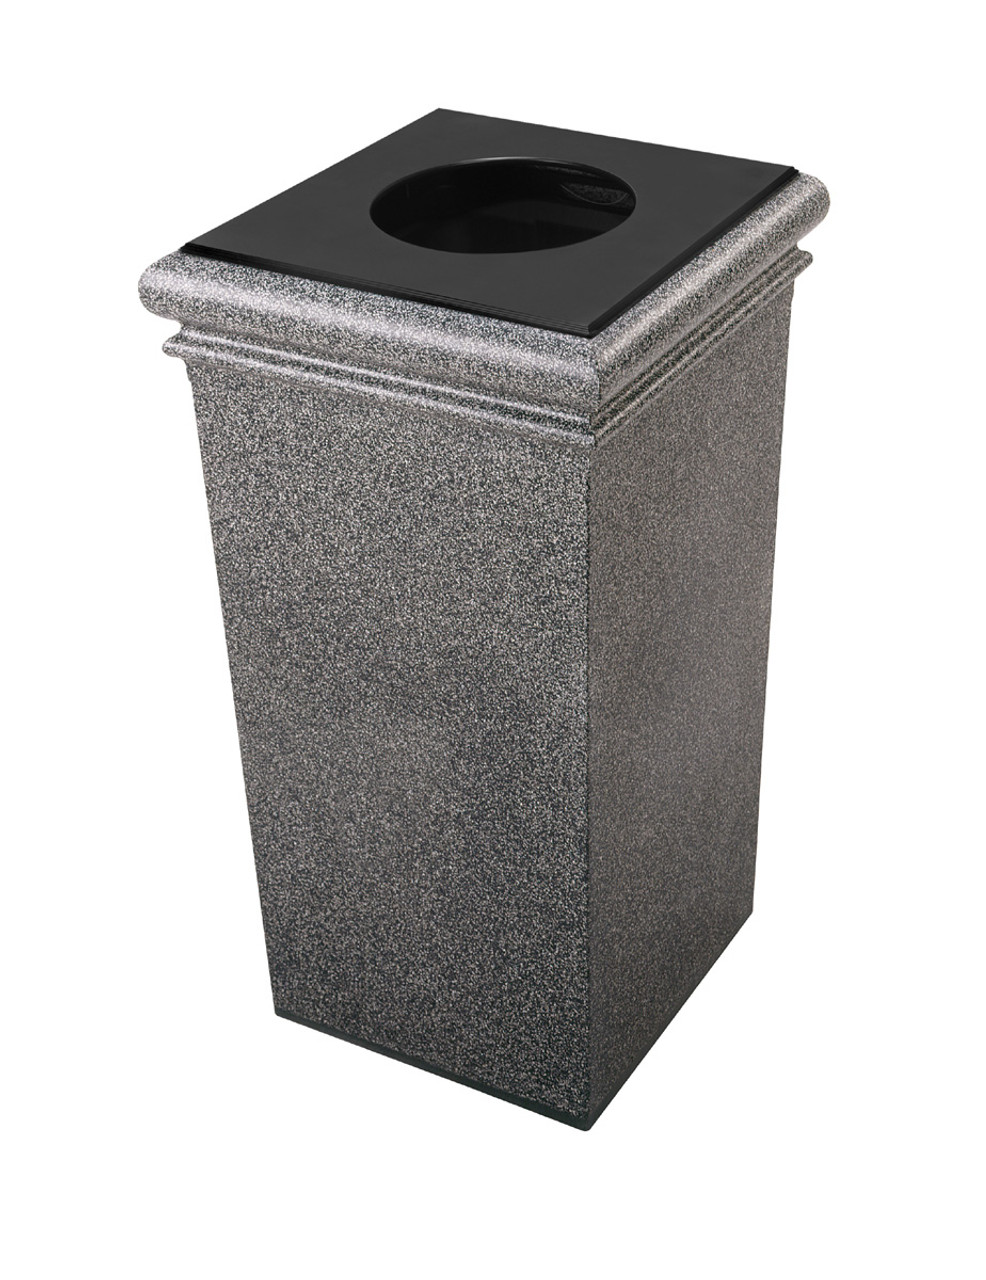 30 Gallon StoneTec Concrete Fiberglass Decorative Trash Can Pepperstone